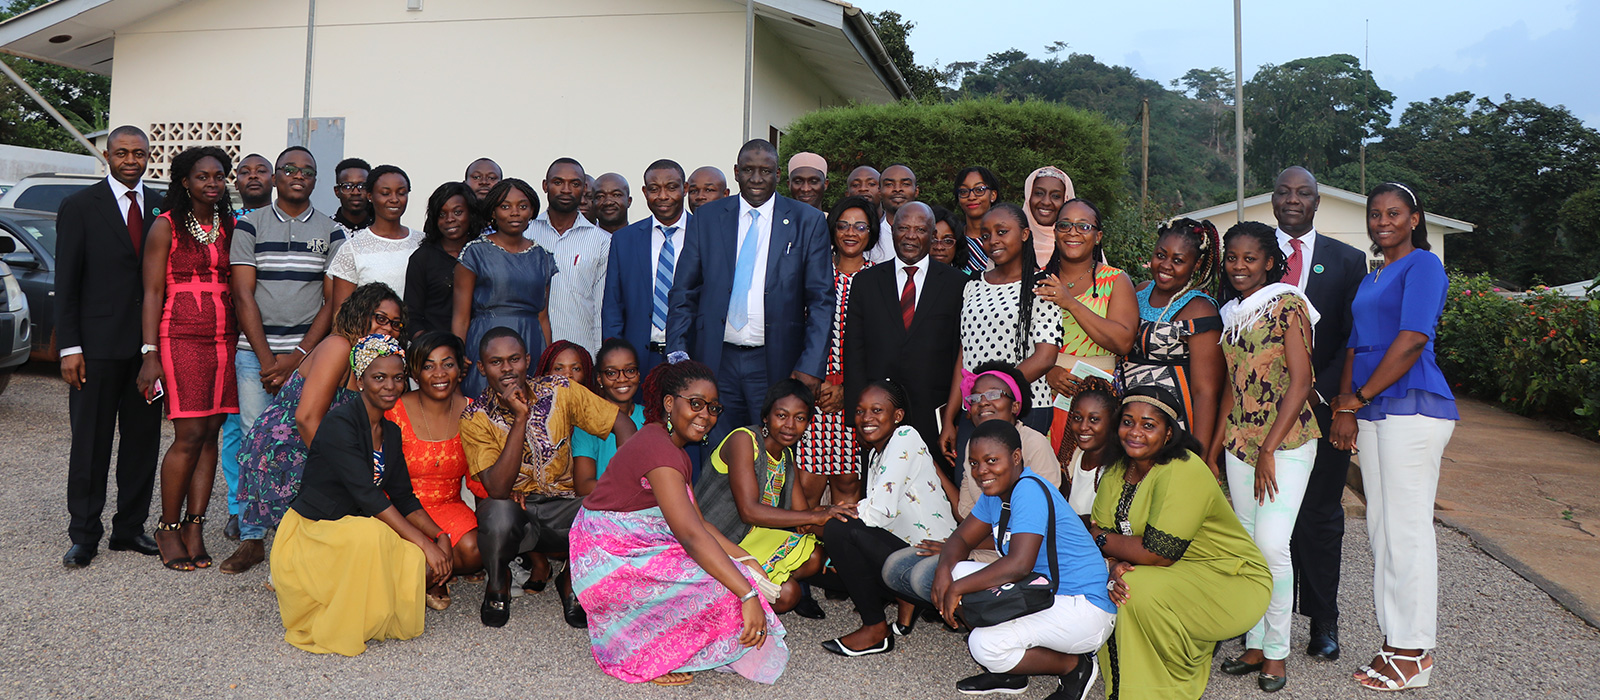 SUPPORTING YOUTH-LED INITIATIVES IN AGRIBUSINESS